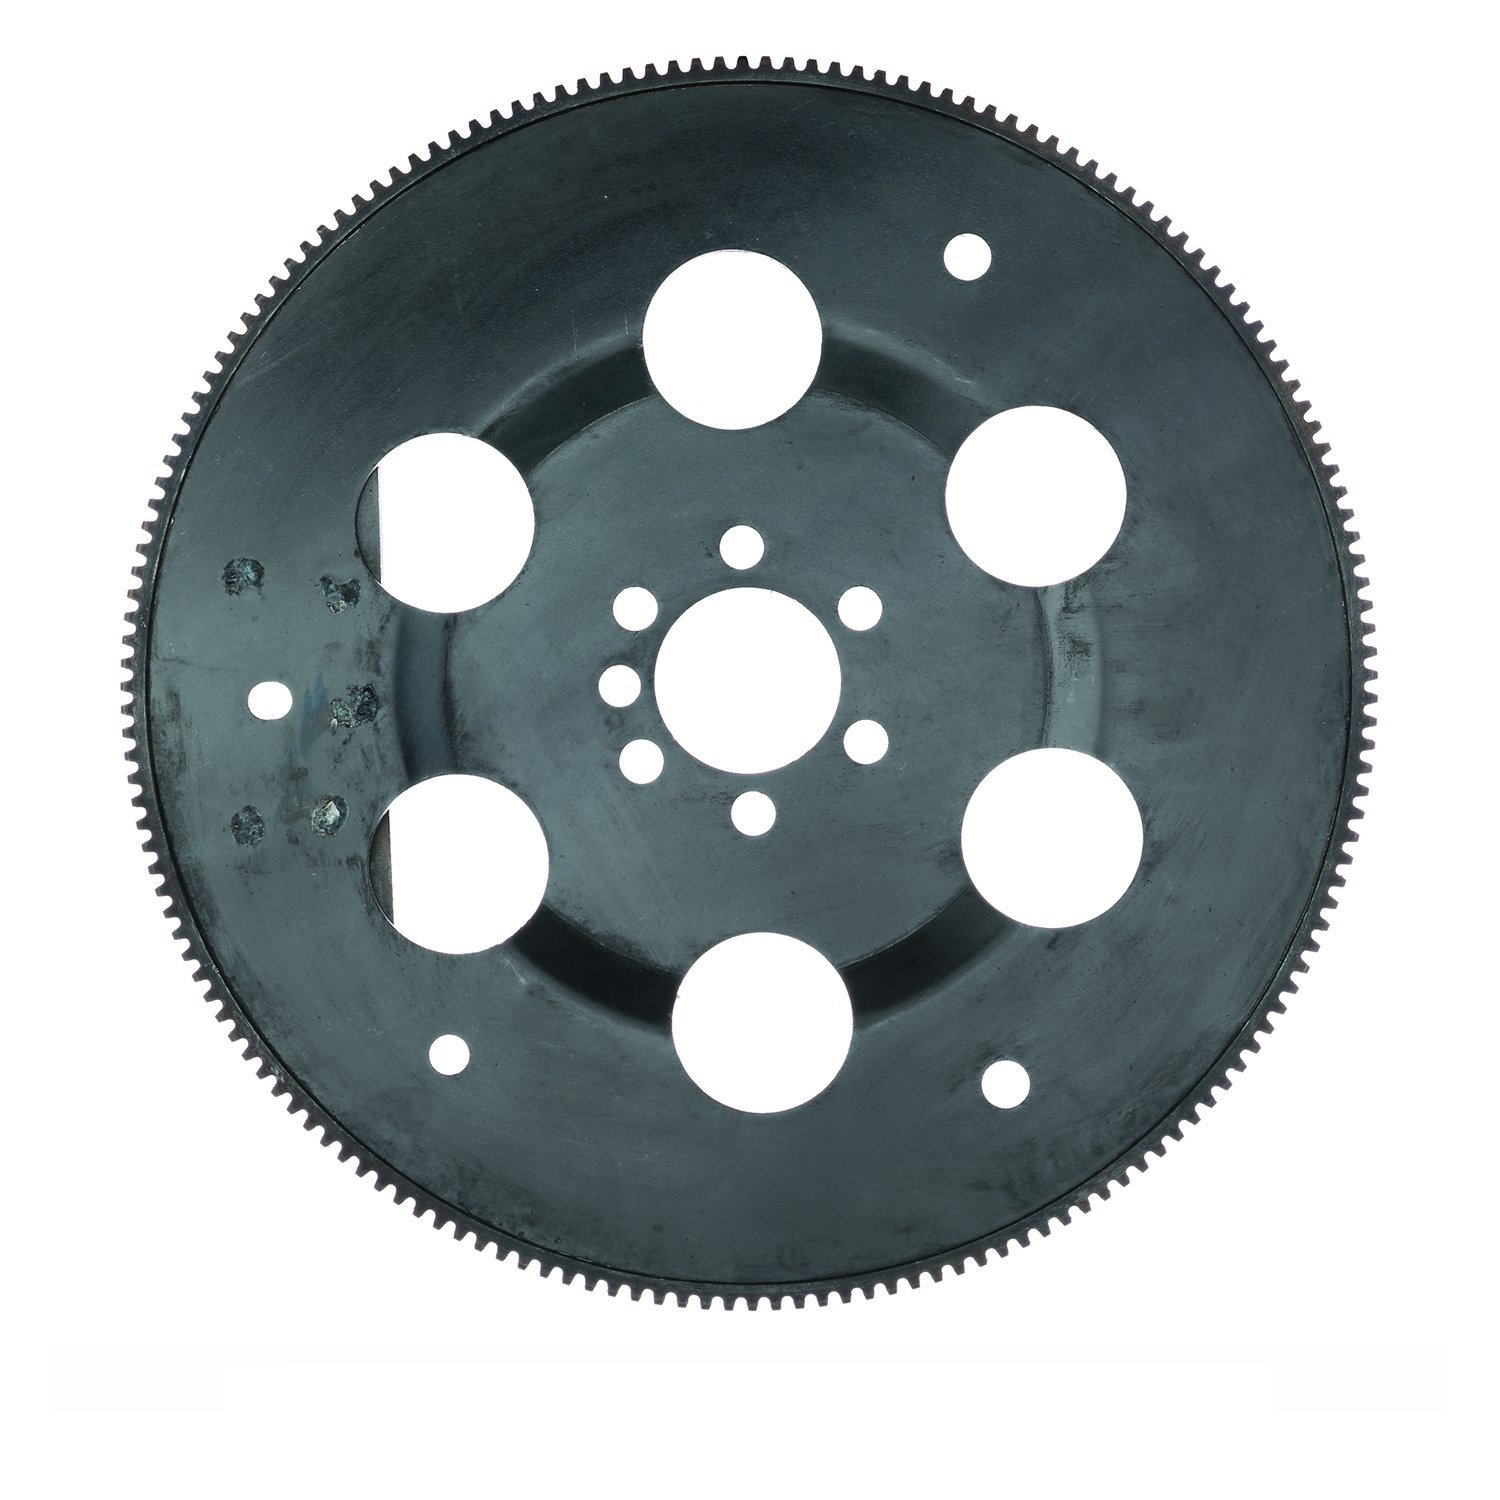 ATP Z-463 Improved Heavy Duty Automatic Transmission Flex Plate